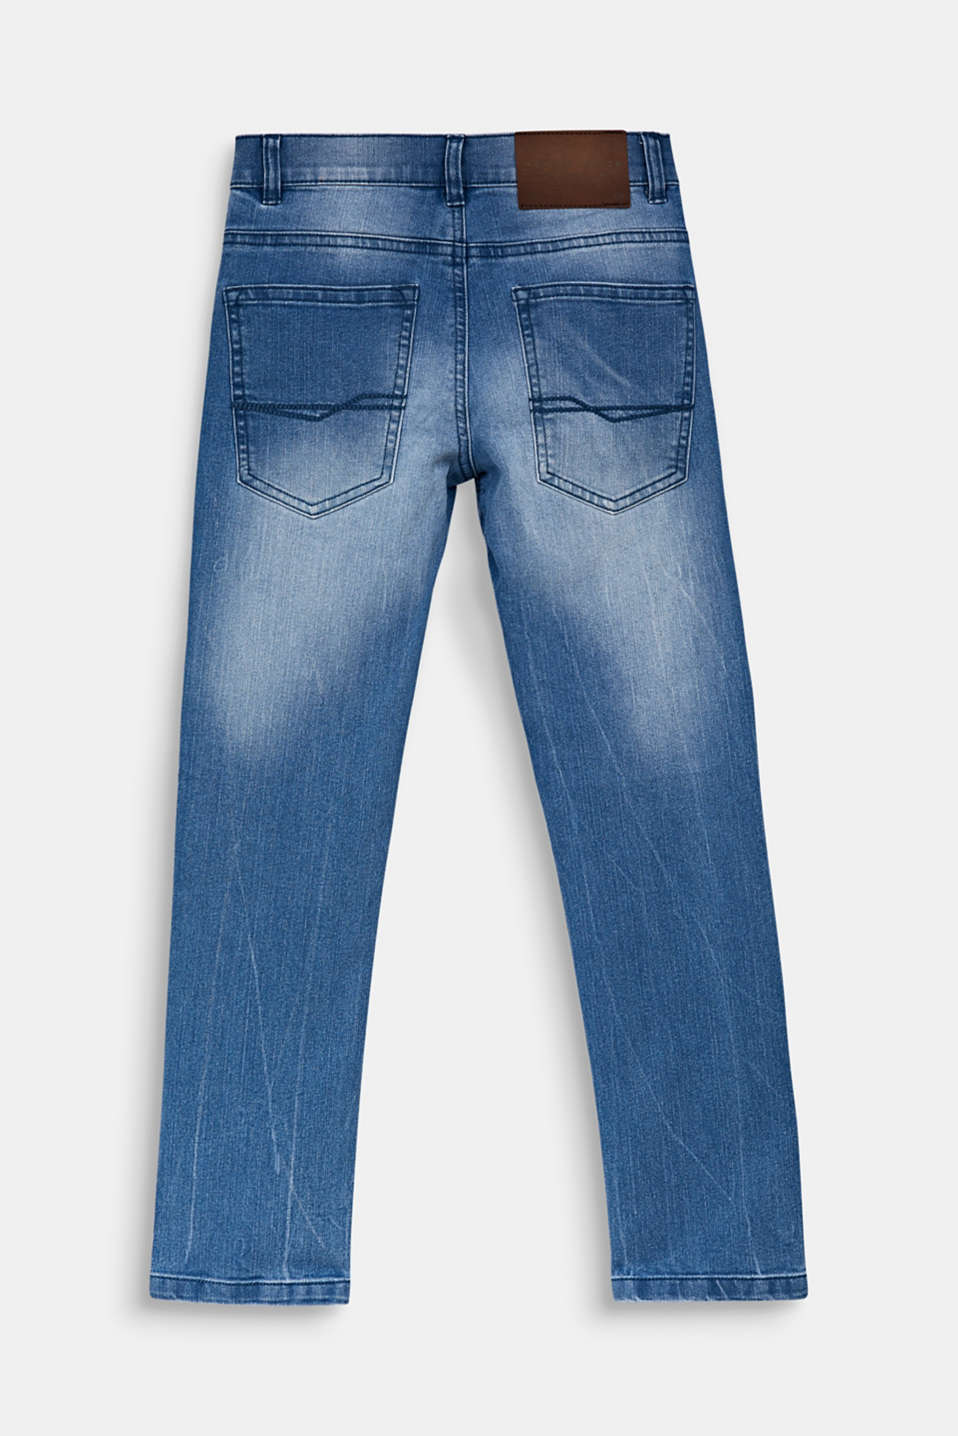 Jeans in a vintage look with an adjustable waistband, LCLIGHT INDIGO D, detail image number 1